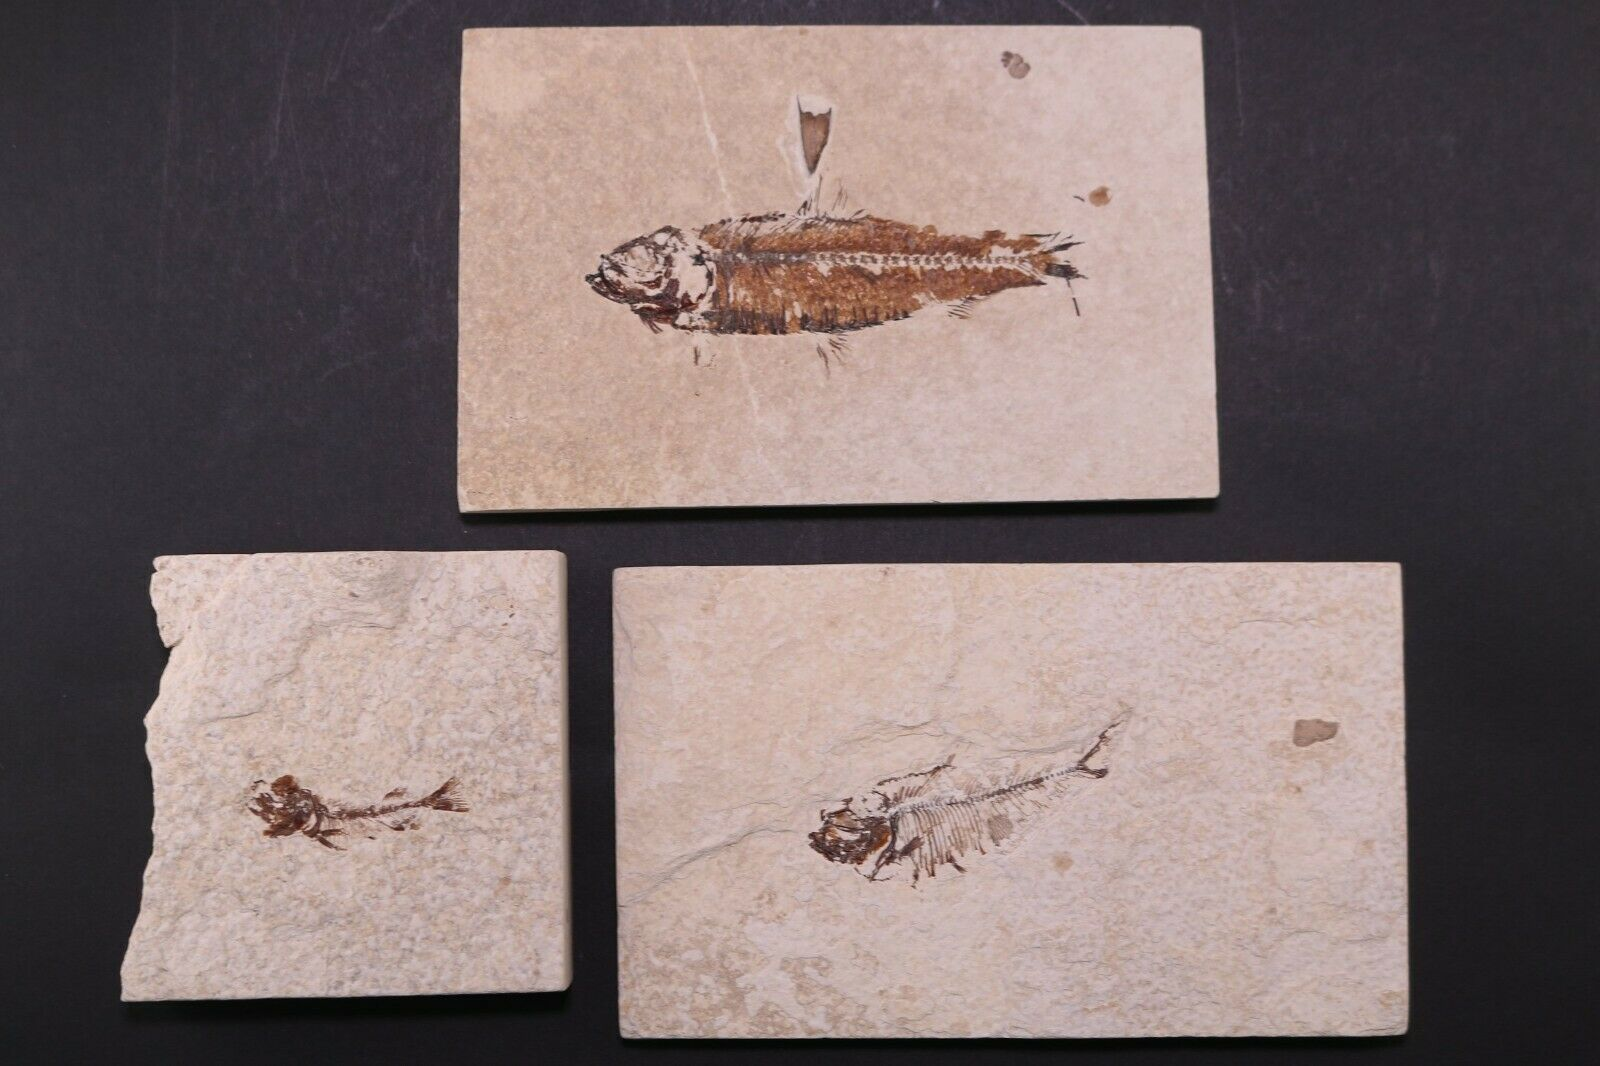 Budget 3 Fossil Fish Diplomystus, Knightia, Phareodus Green River FM Wyoming COA